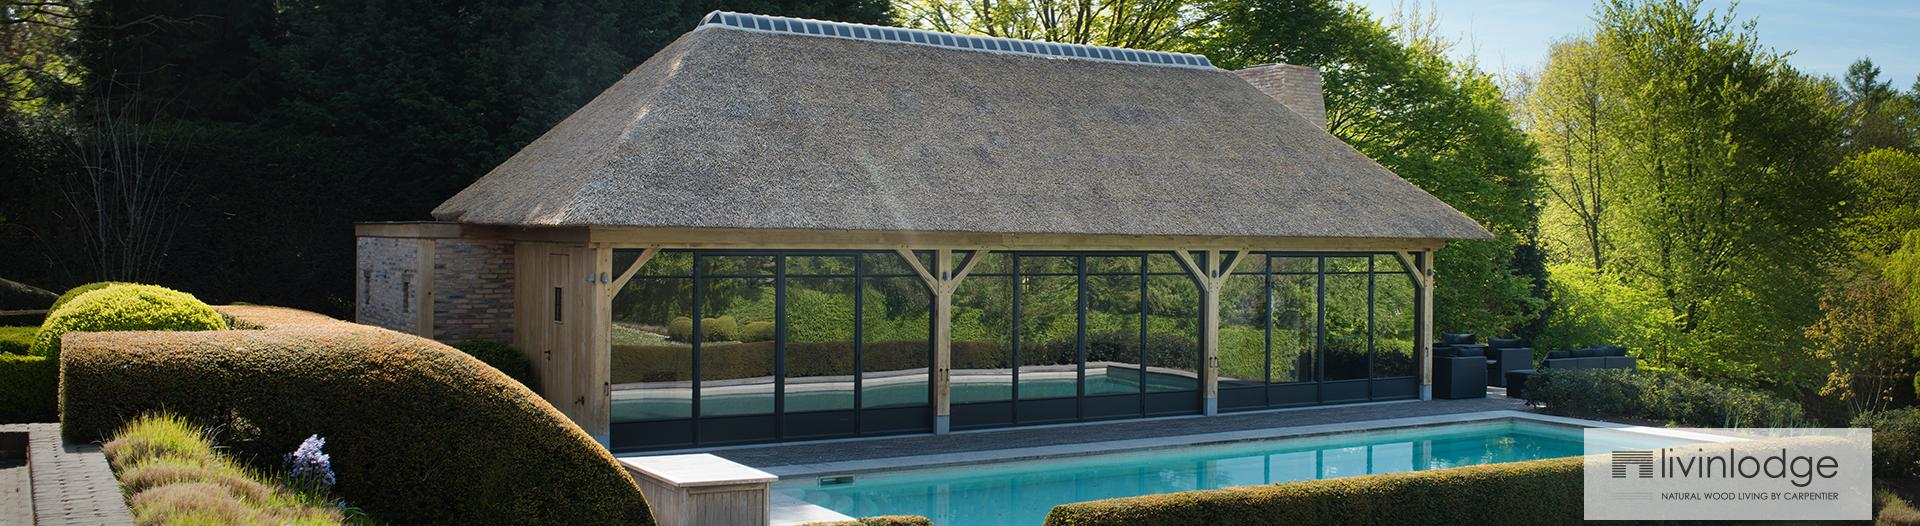 houten poolhouse cottage